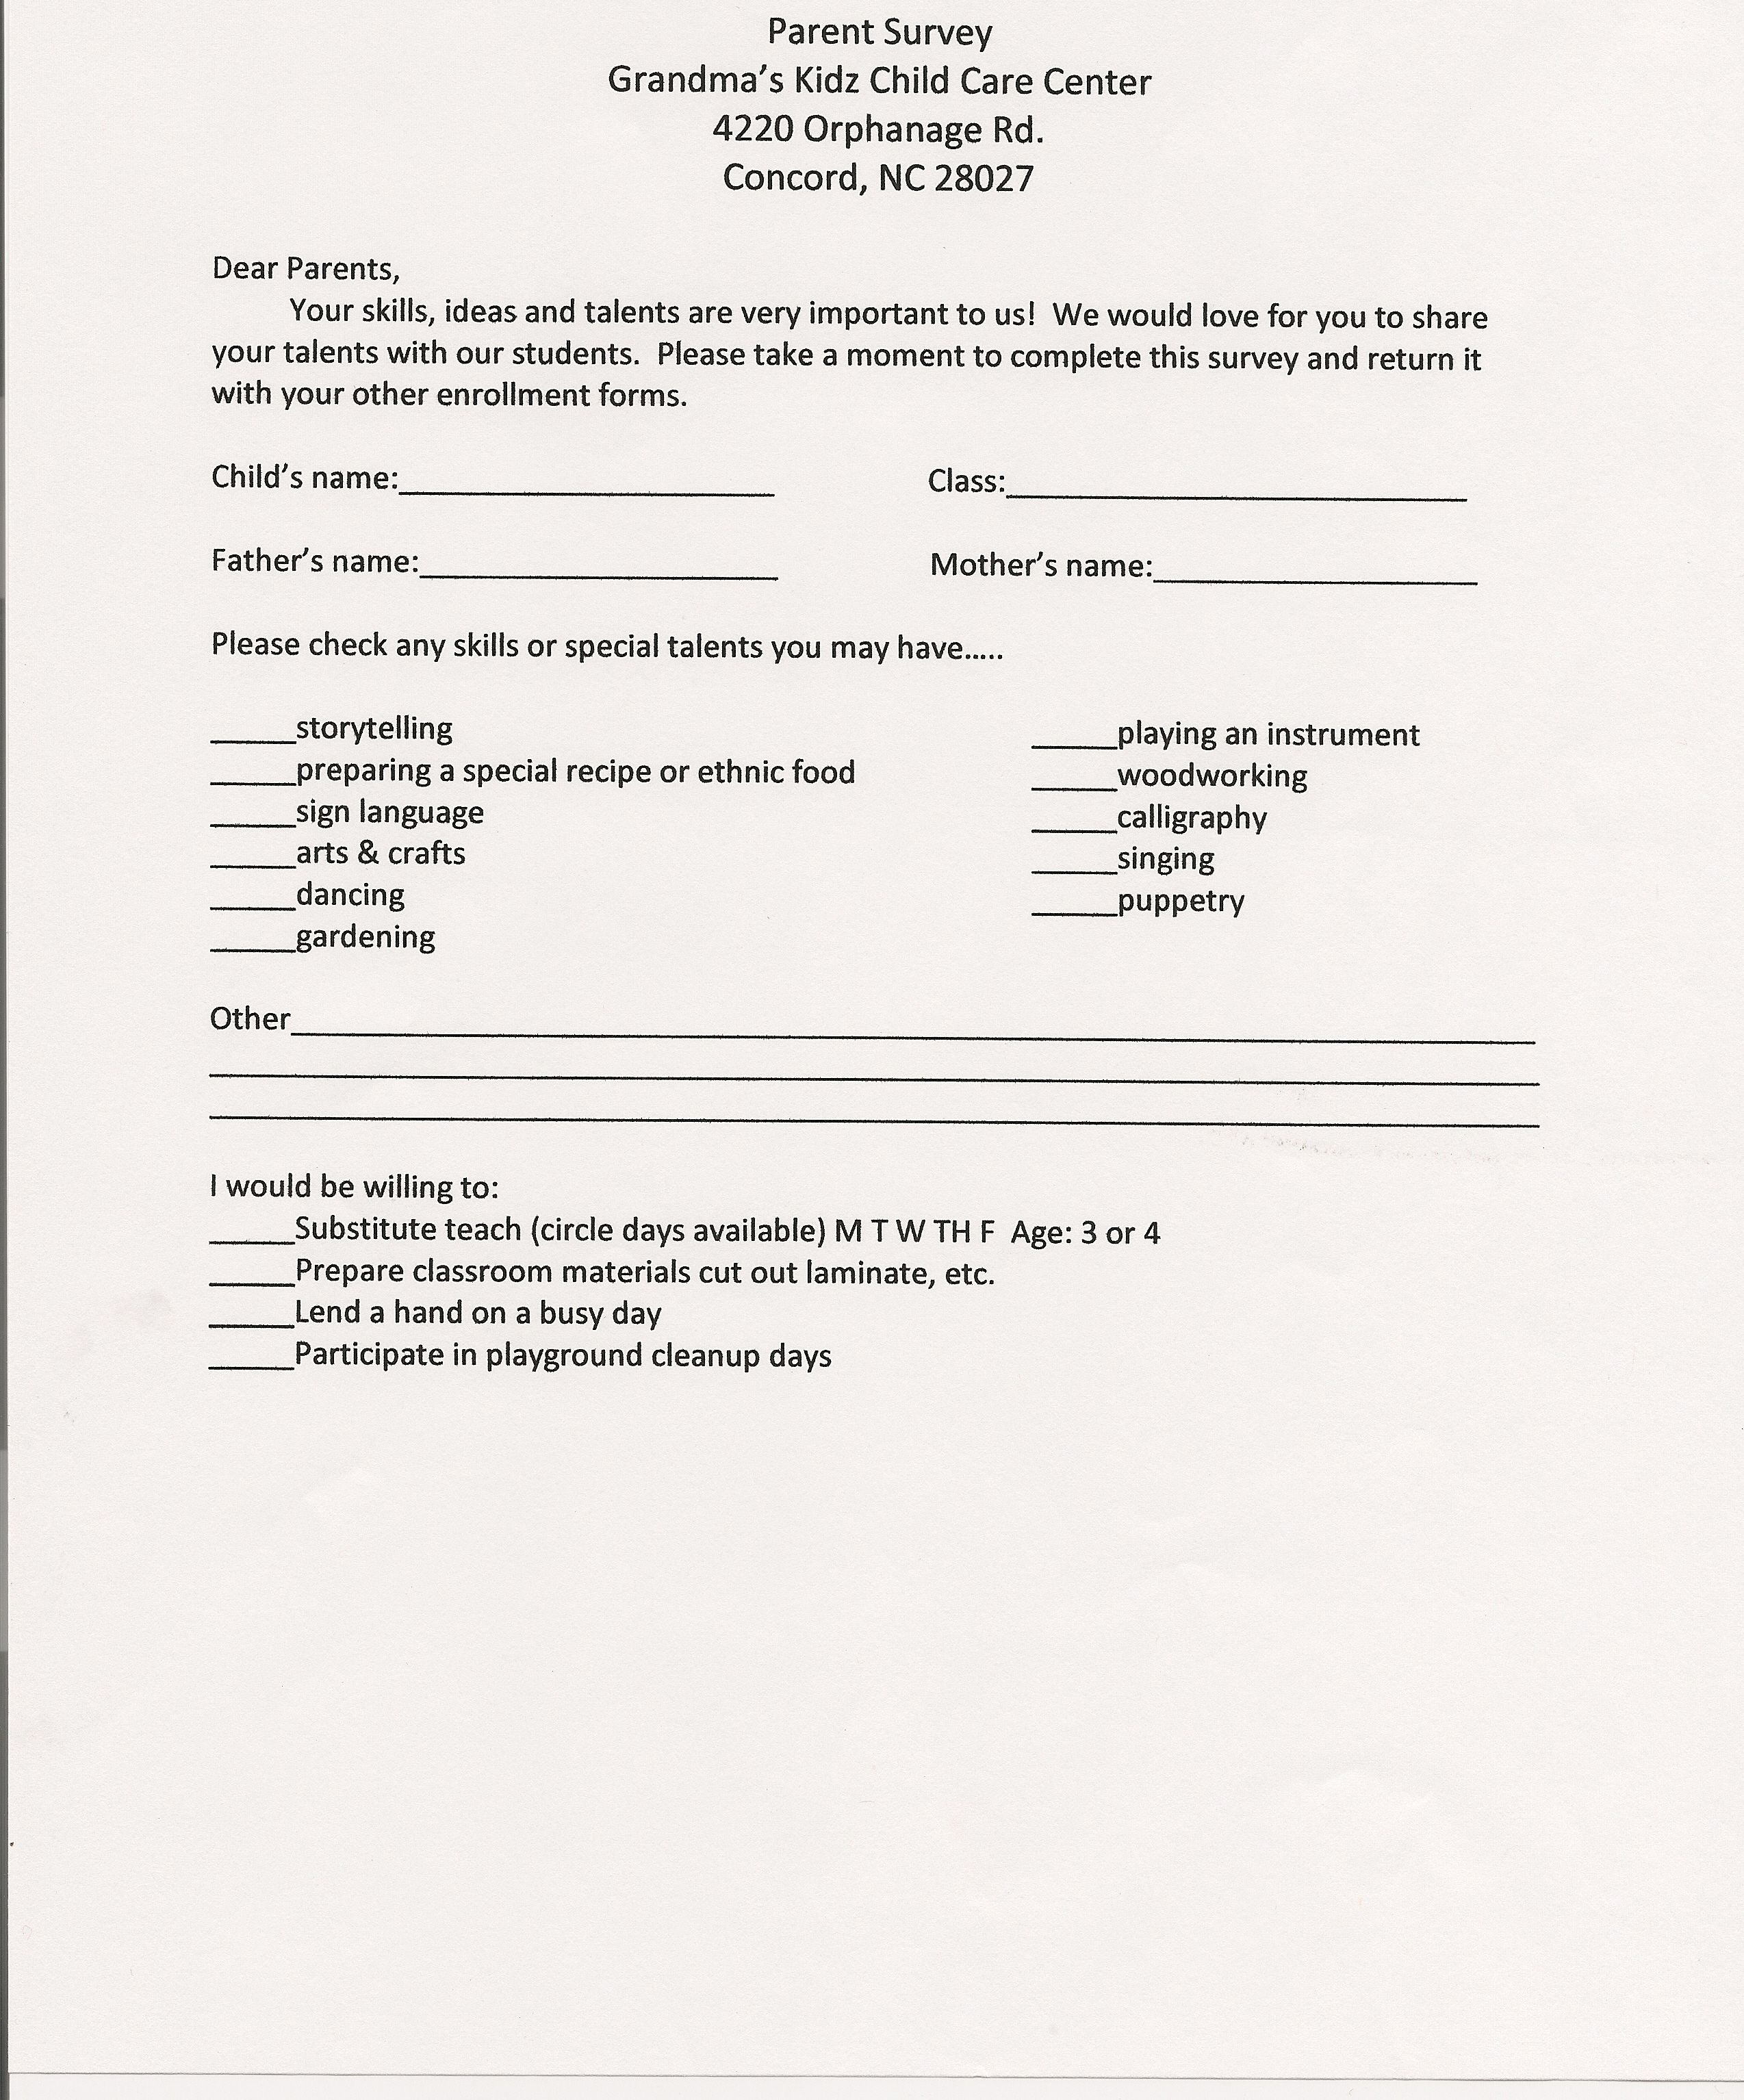 parent survey forms printable preK | Preschool | Daycare | Child ...